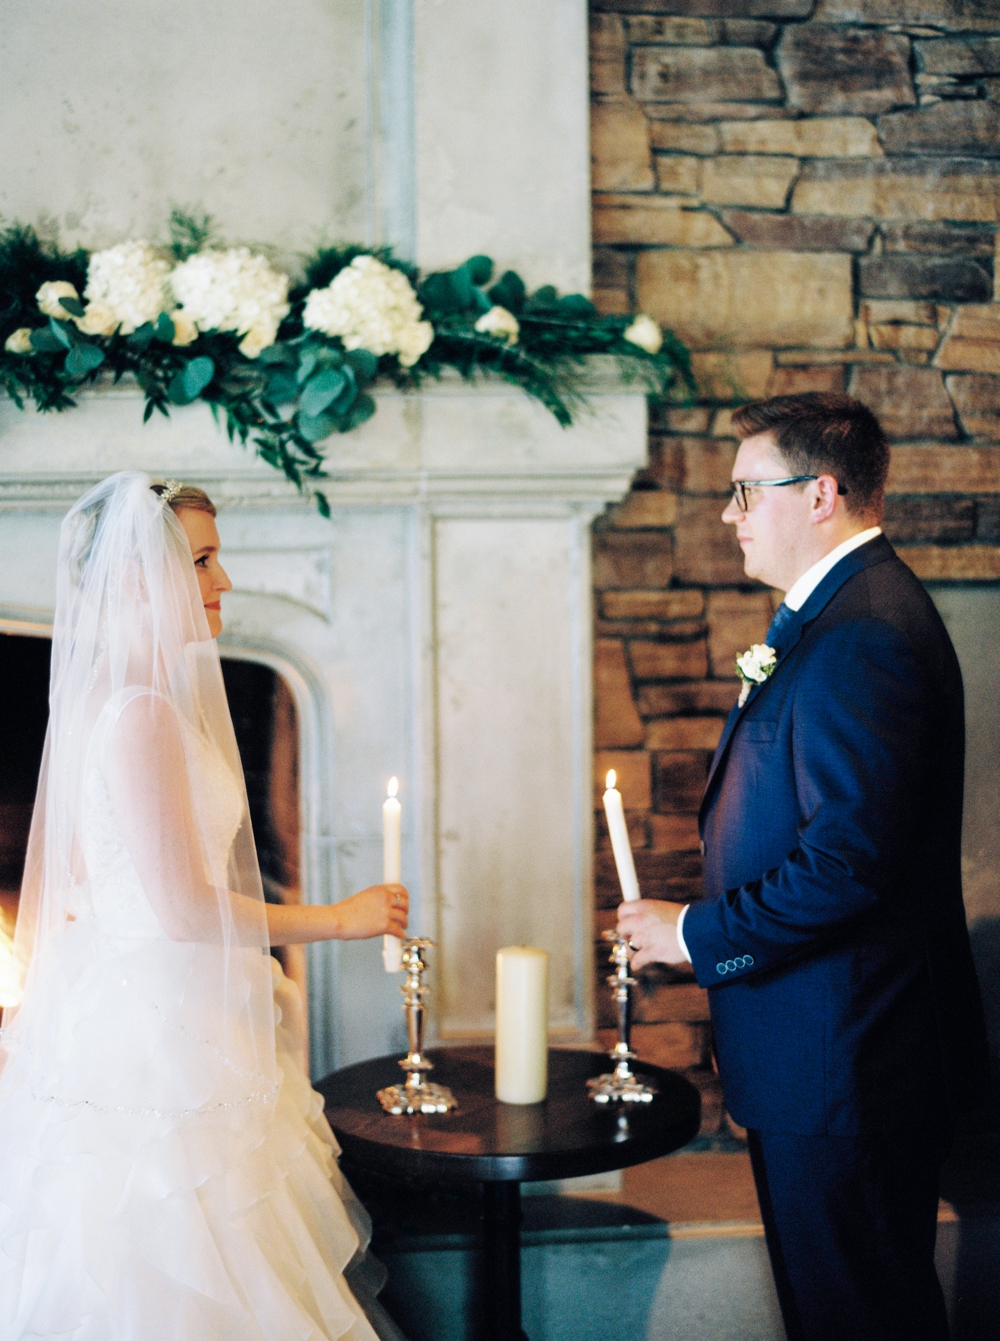 Calgary wedding photographers | The lake house wedding | Fireplace wedding ceremony | Justine Milton Photography